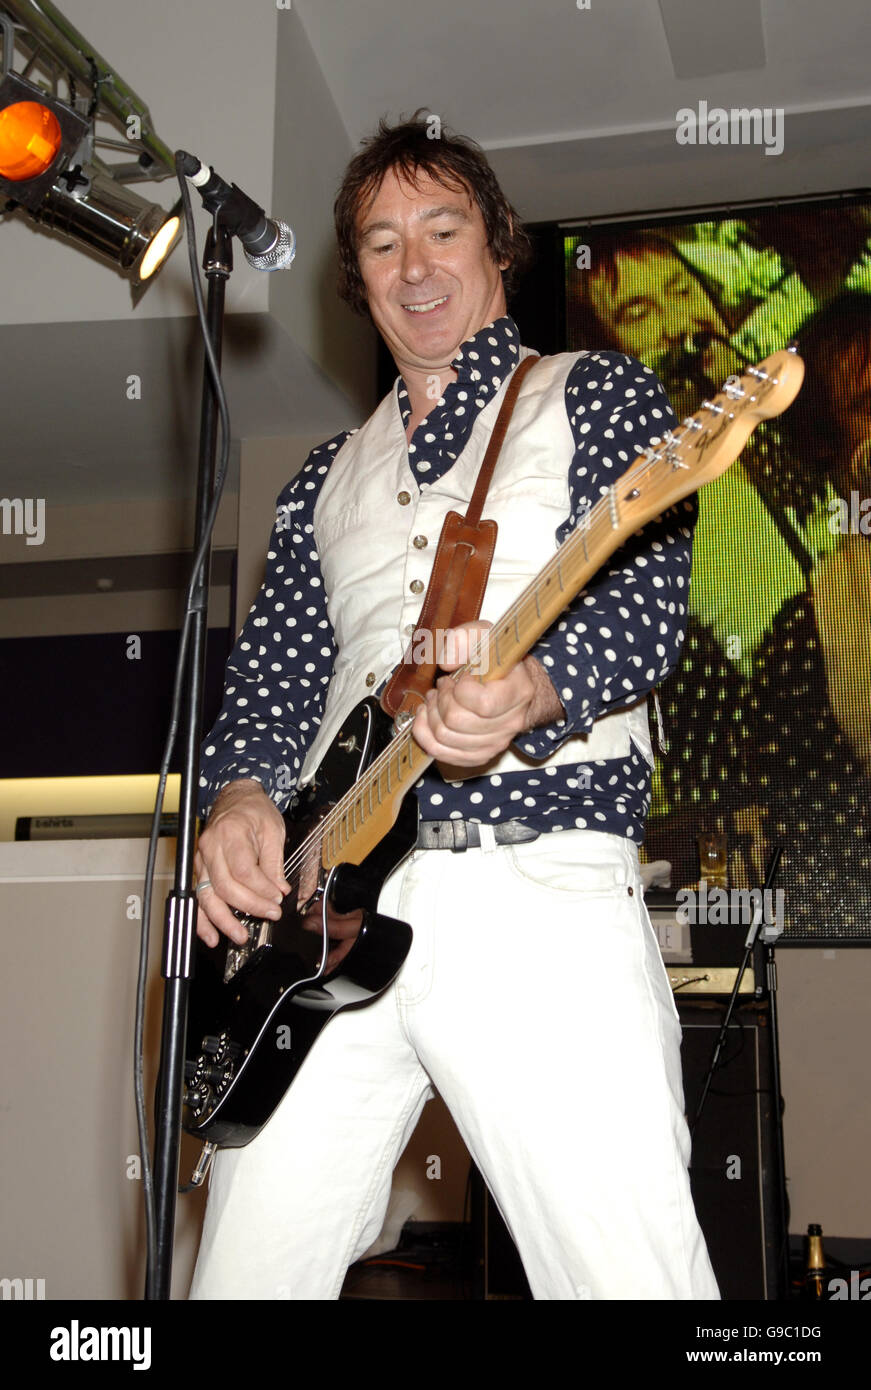 Steve Diggle of the Buzzcocks perform on stage during the MOJO Honours List launch - which comprises 10 awards, - Stock Image